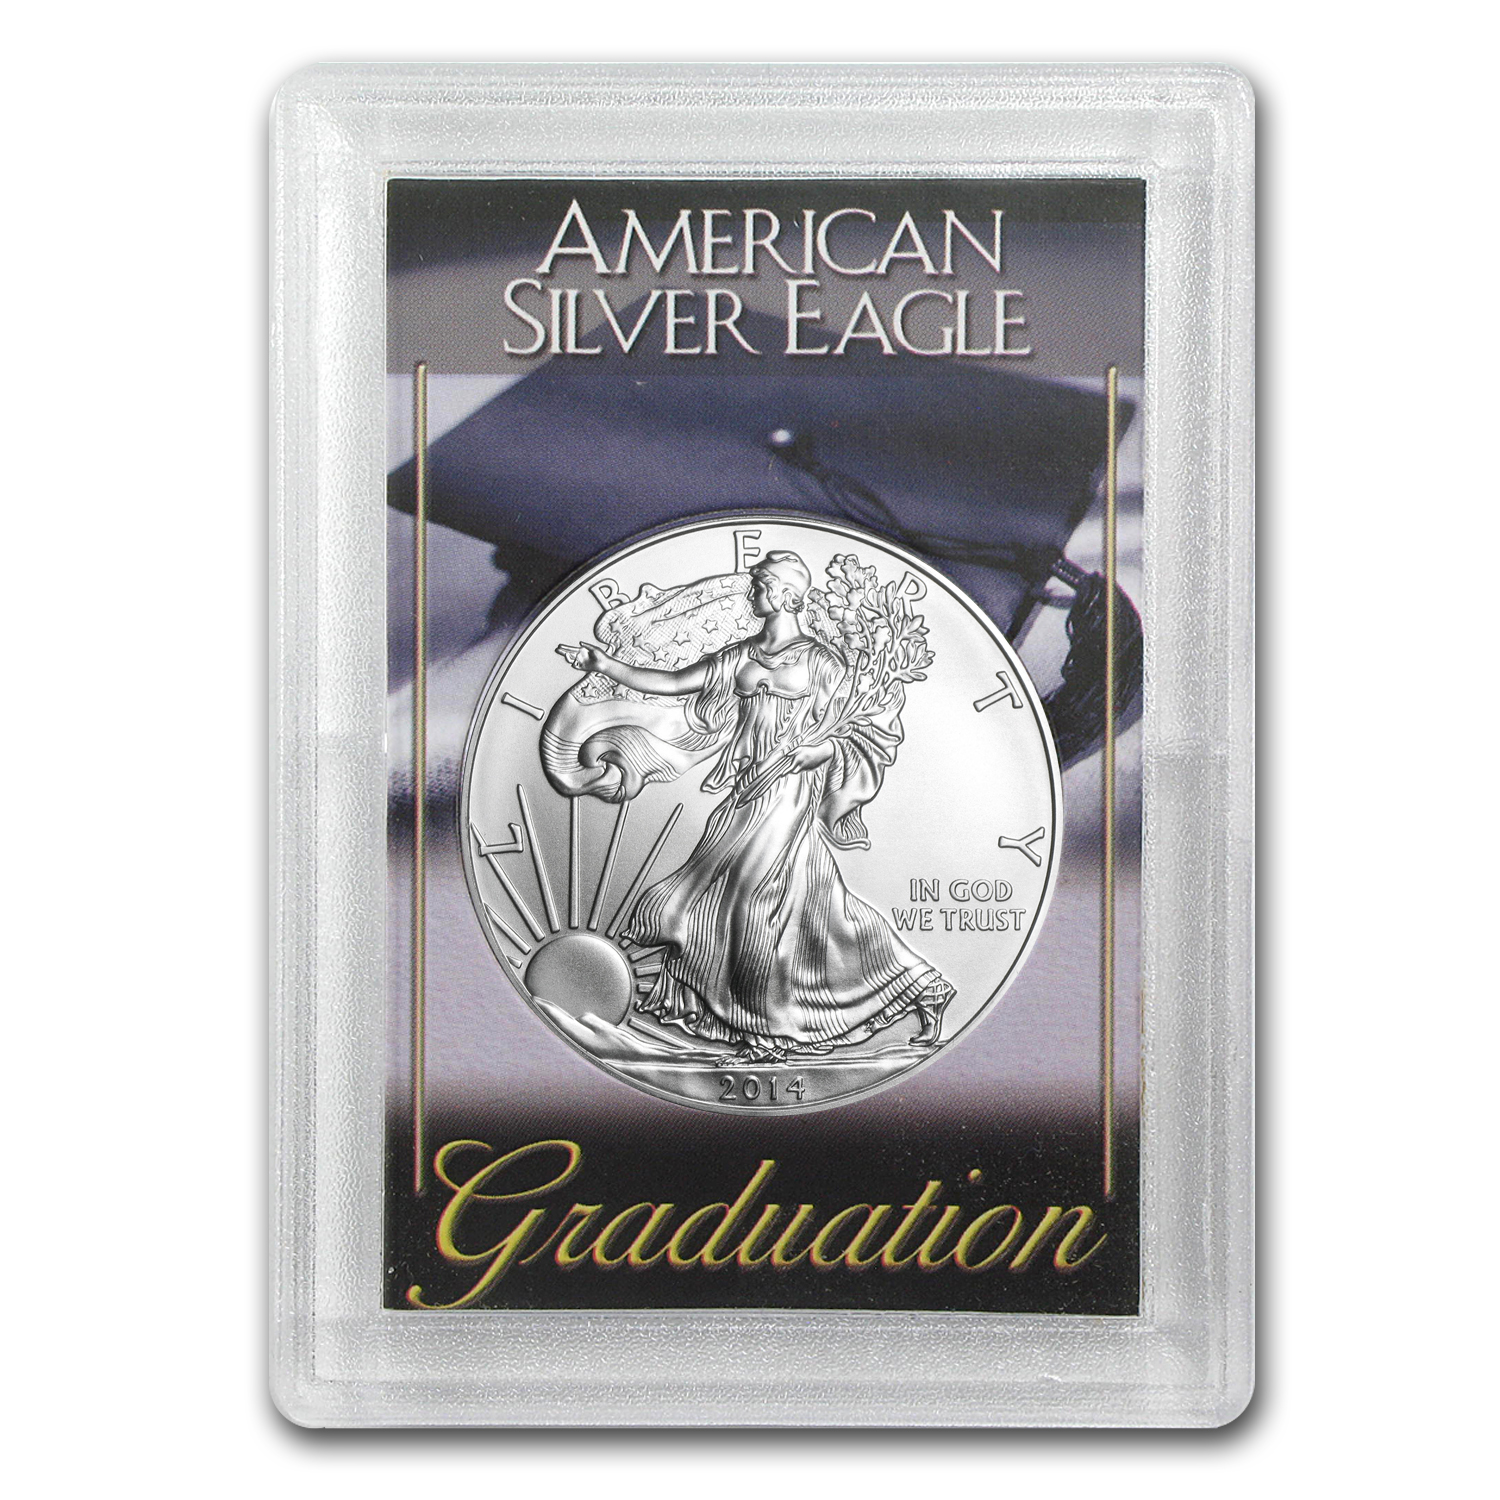 2014 1 oz Silver Eagle in Graduation Design Harris Holder